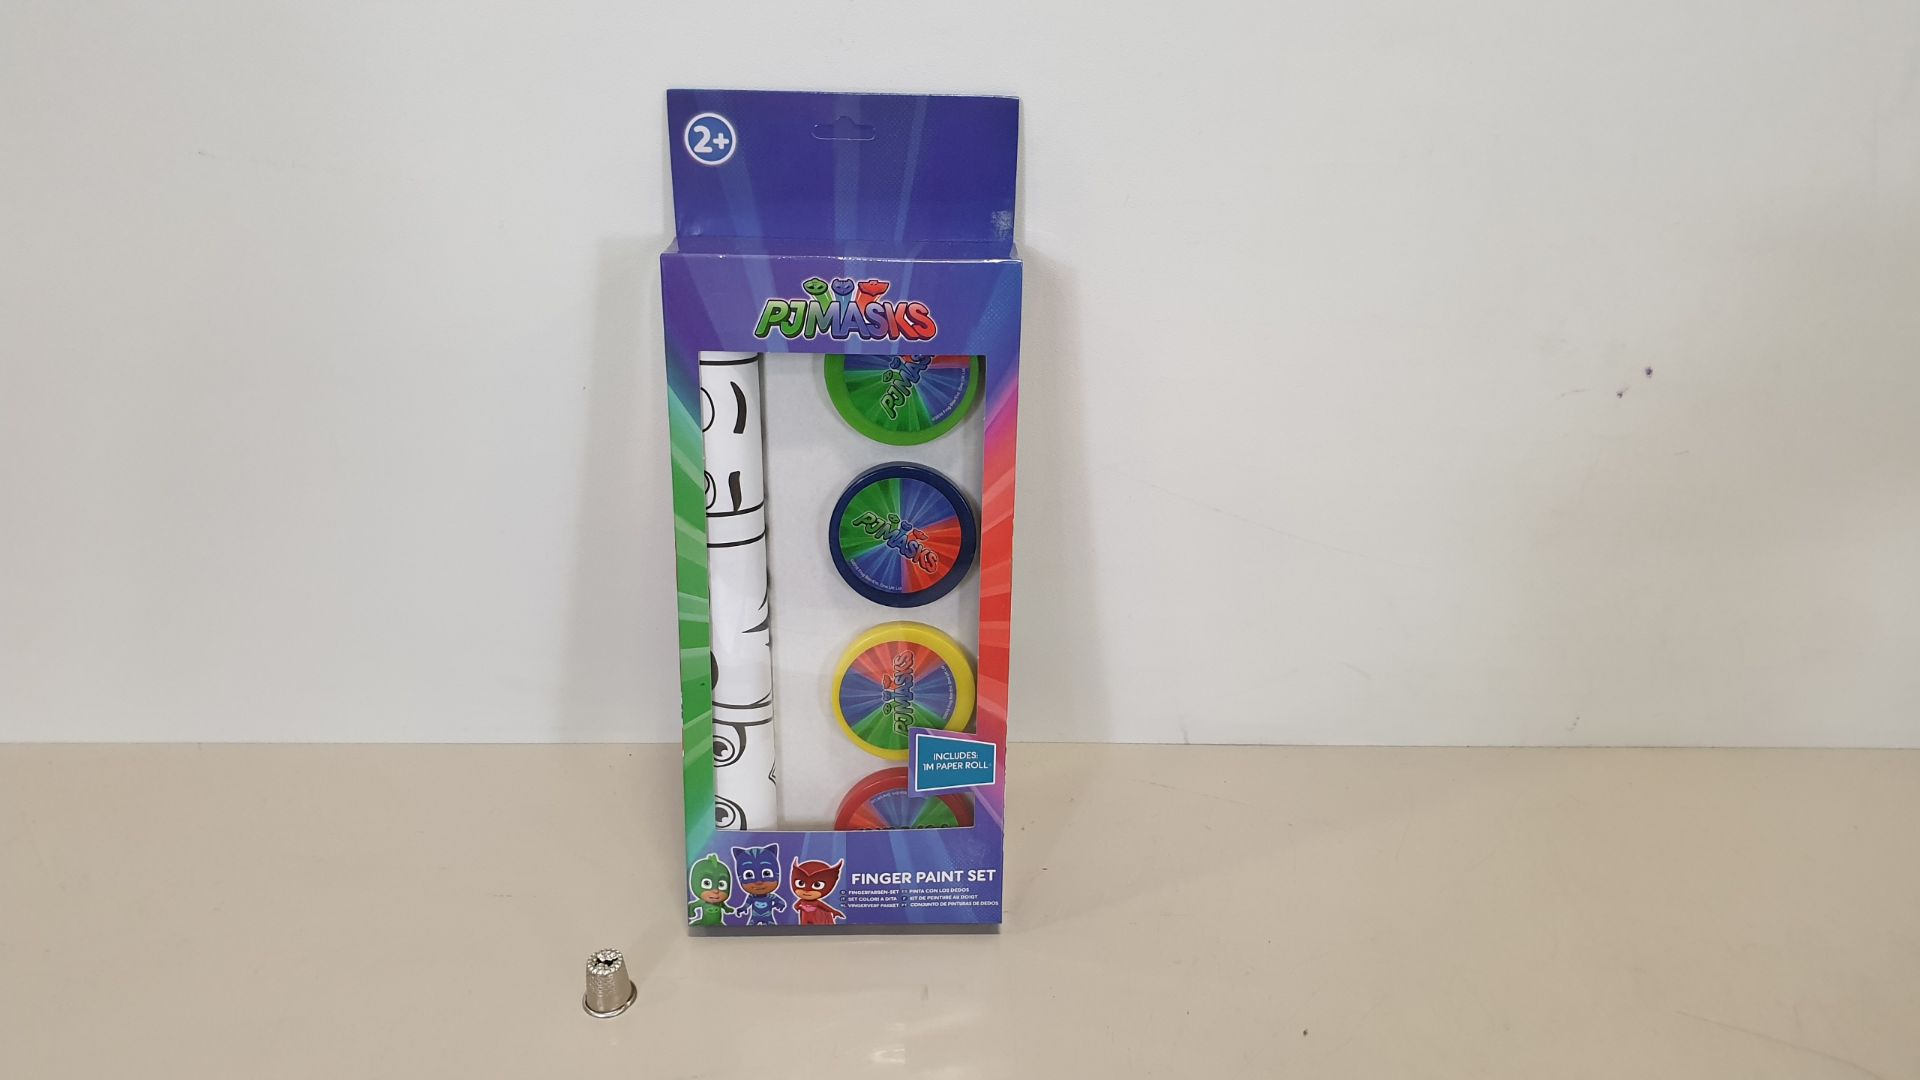 Lot 43 - 84 X BRAND NEW PJ MASKS FINGER PAINT SETS WITH PAPER ROLL - IN 7 BOXES